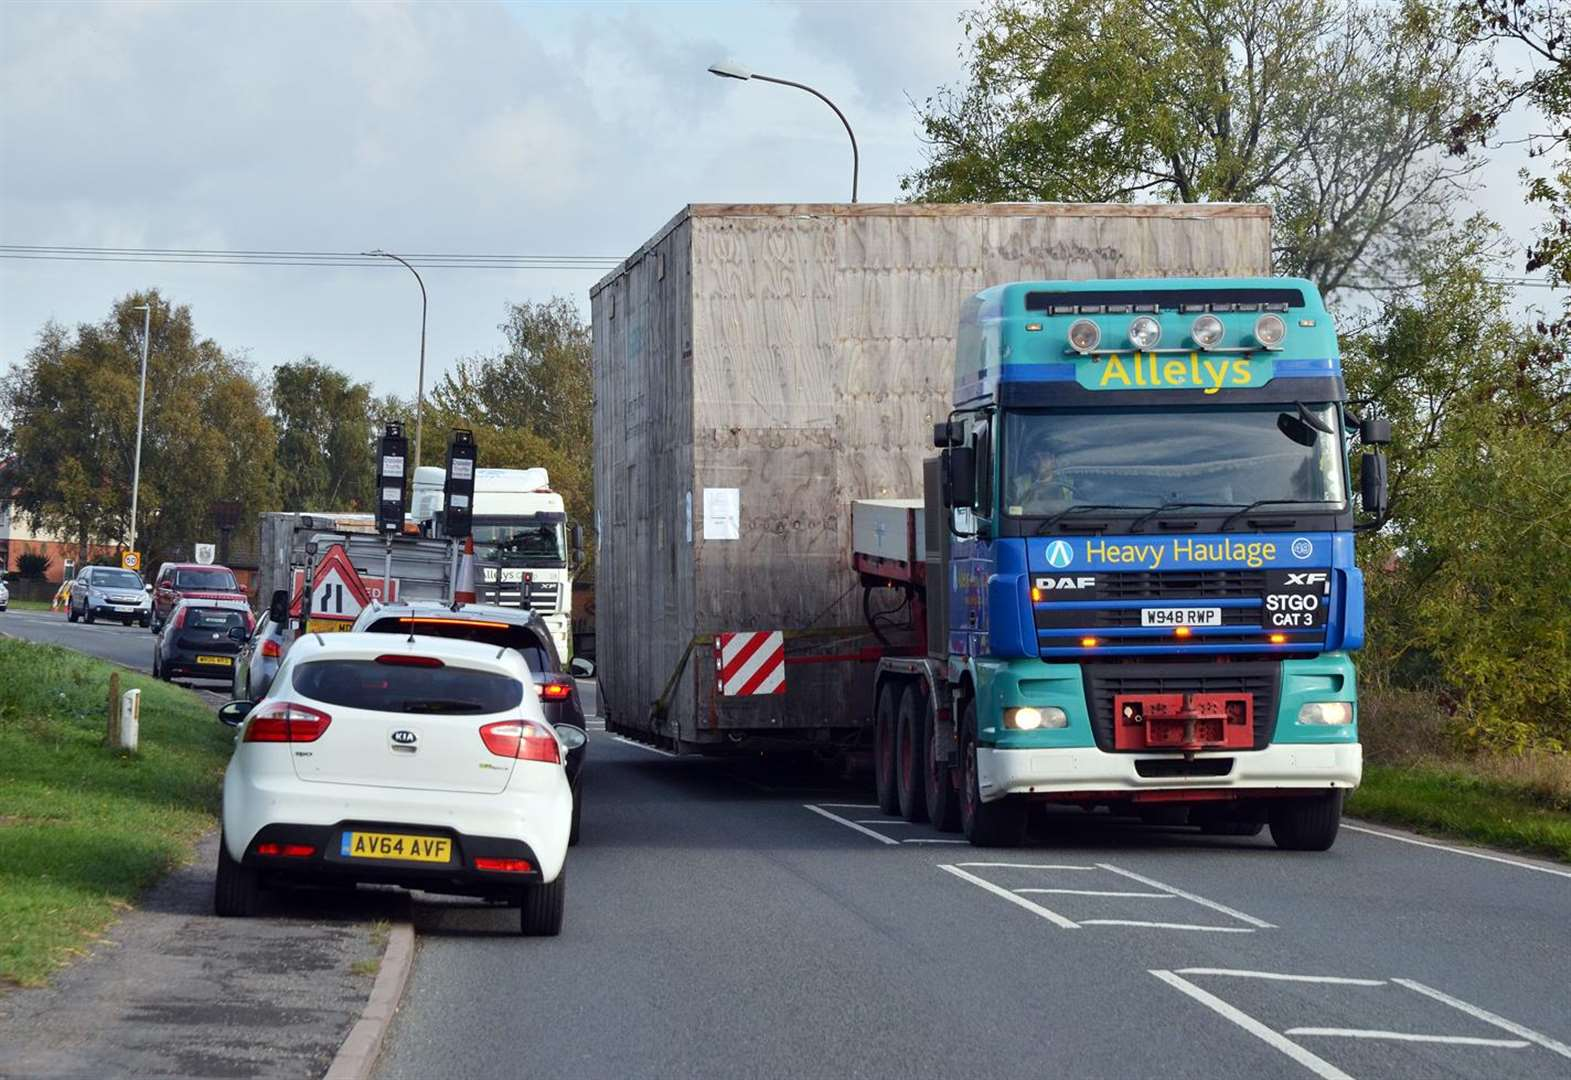 Traffic pulls over for abnormal load